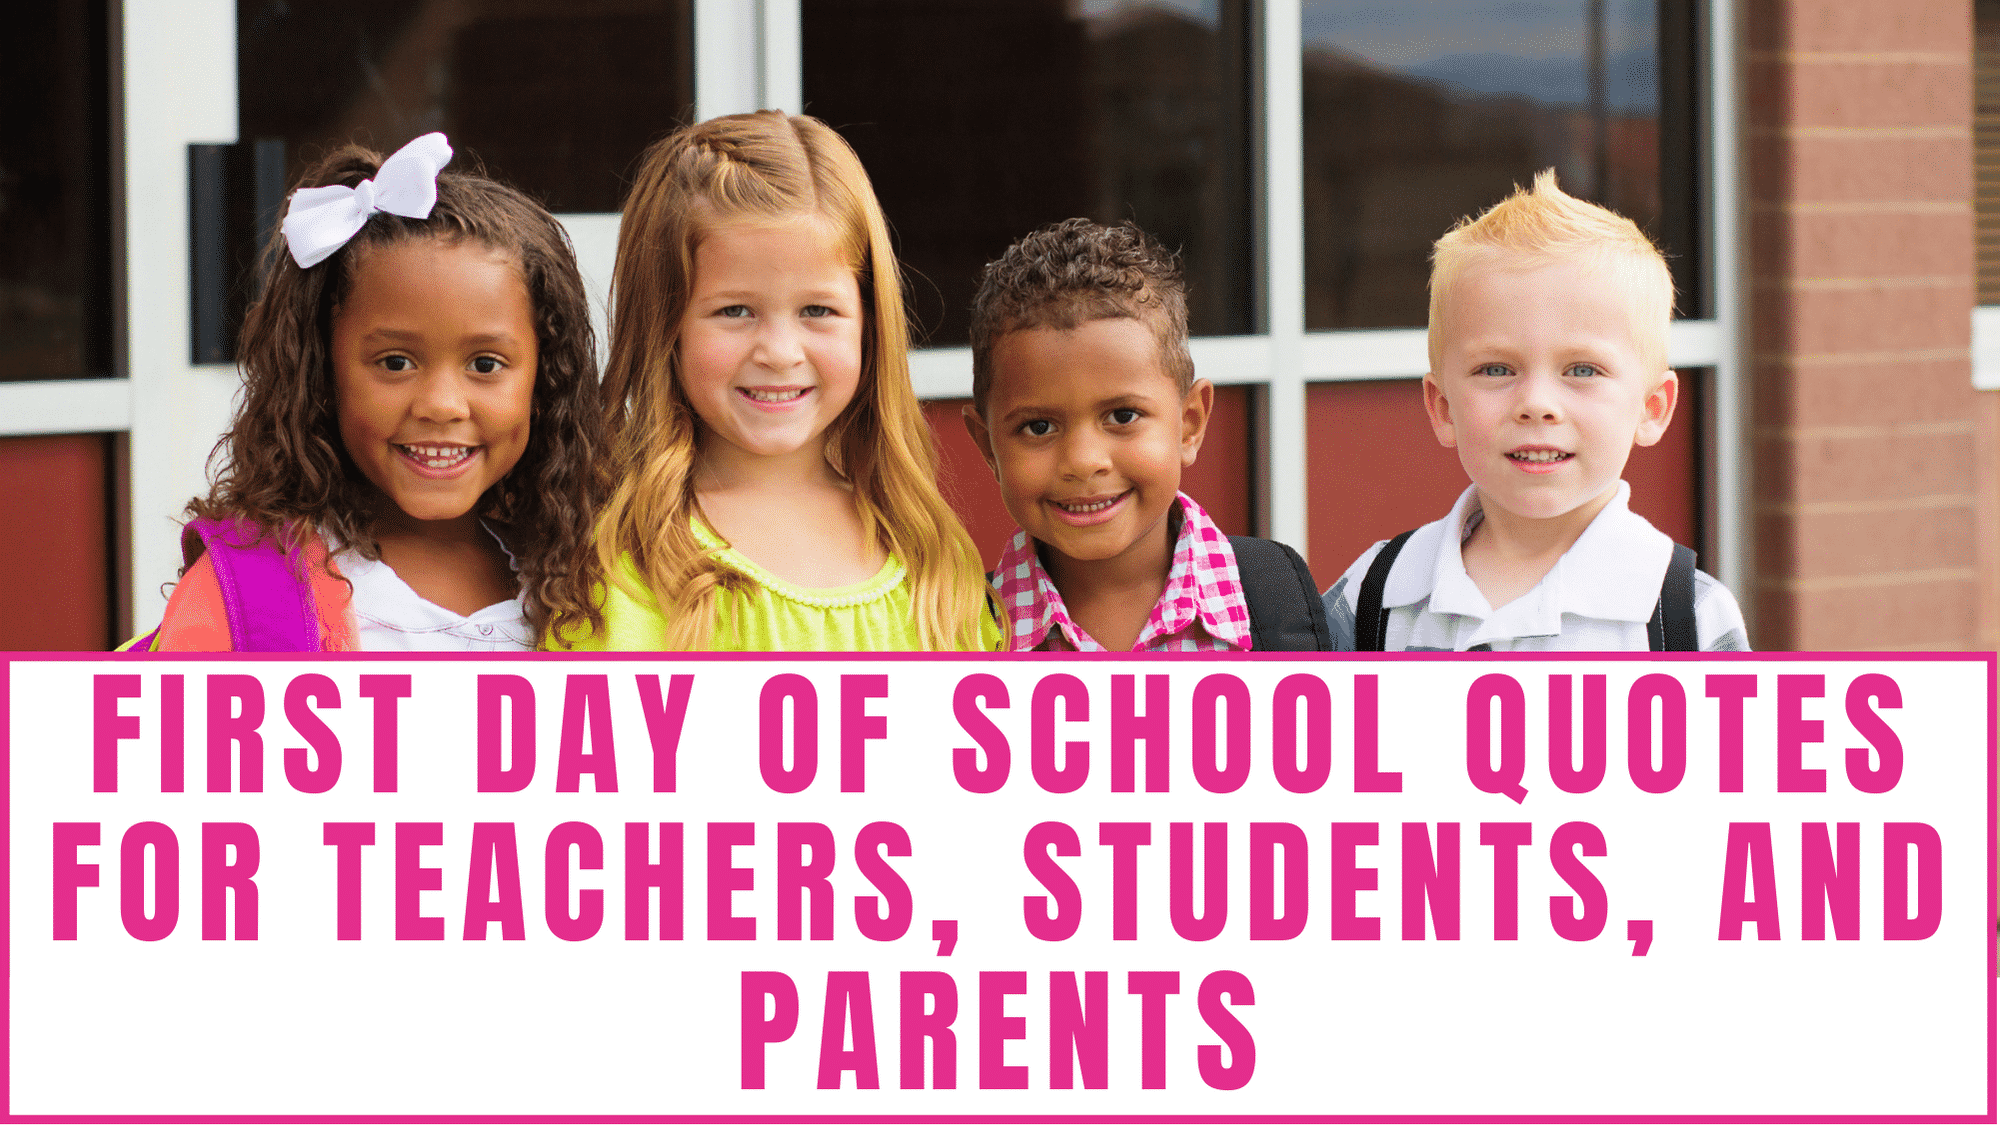 Depending on if you are the parent, the teacher or the student, the first day of school can be exciting or scary. Here you'll find first day of school quotes for teachers students and parents that fit both of these emotions.